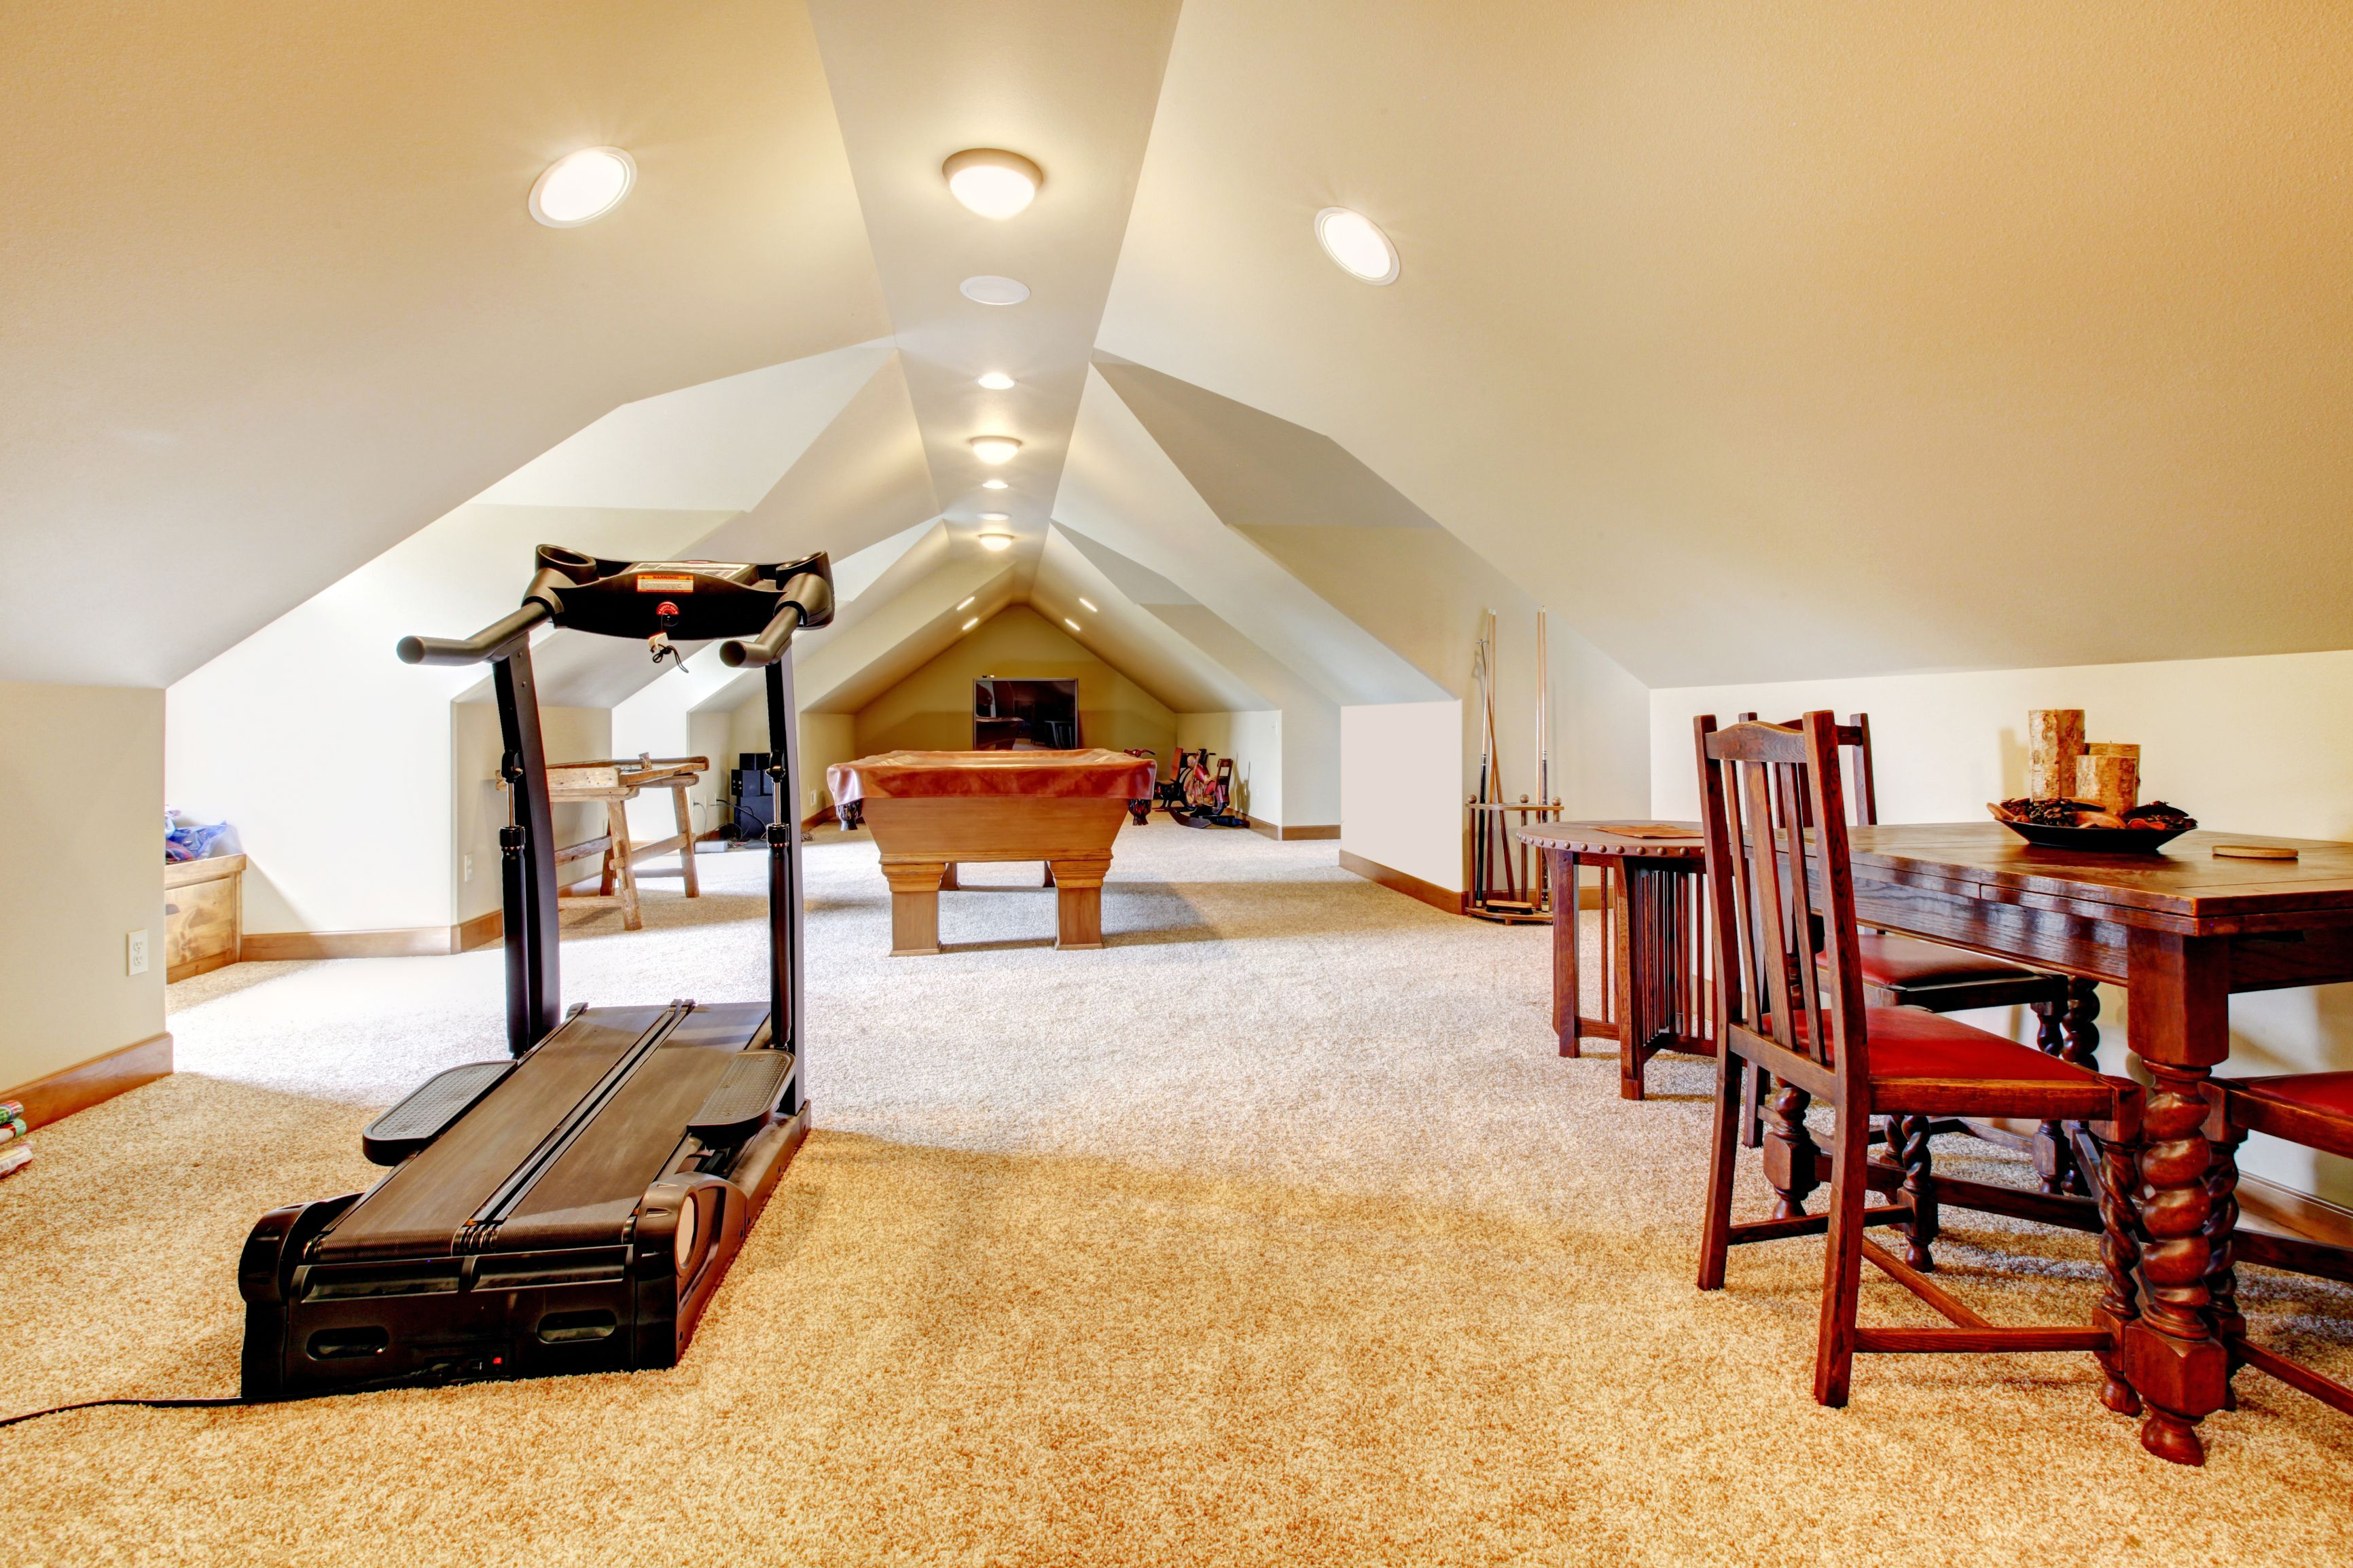 Amazing Attic Entertainment Room Plenty Of Room To Run And The Paint Color Doesn T Dominate S Entertainment Room Entertainment Room Decor Entertaining House